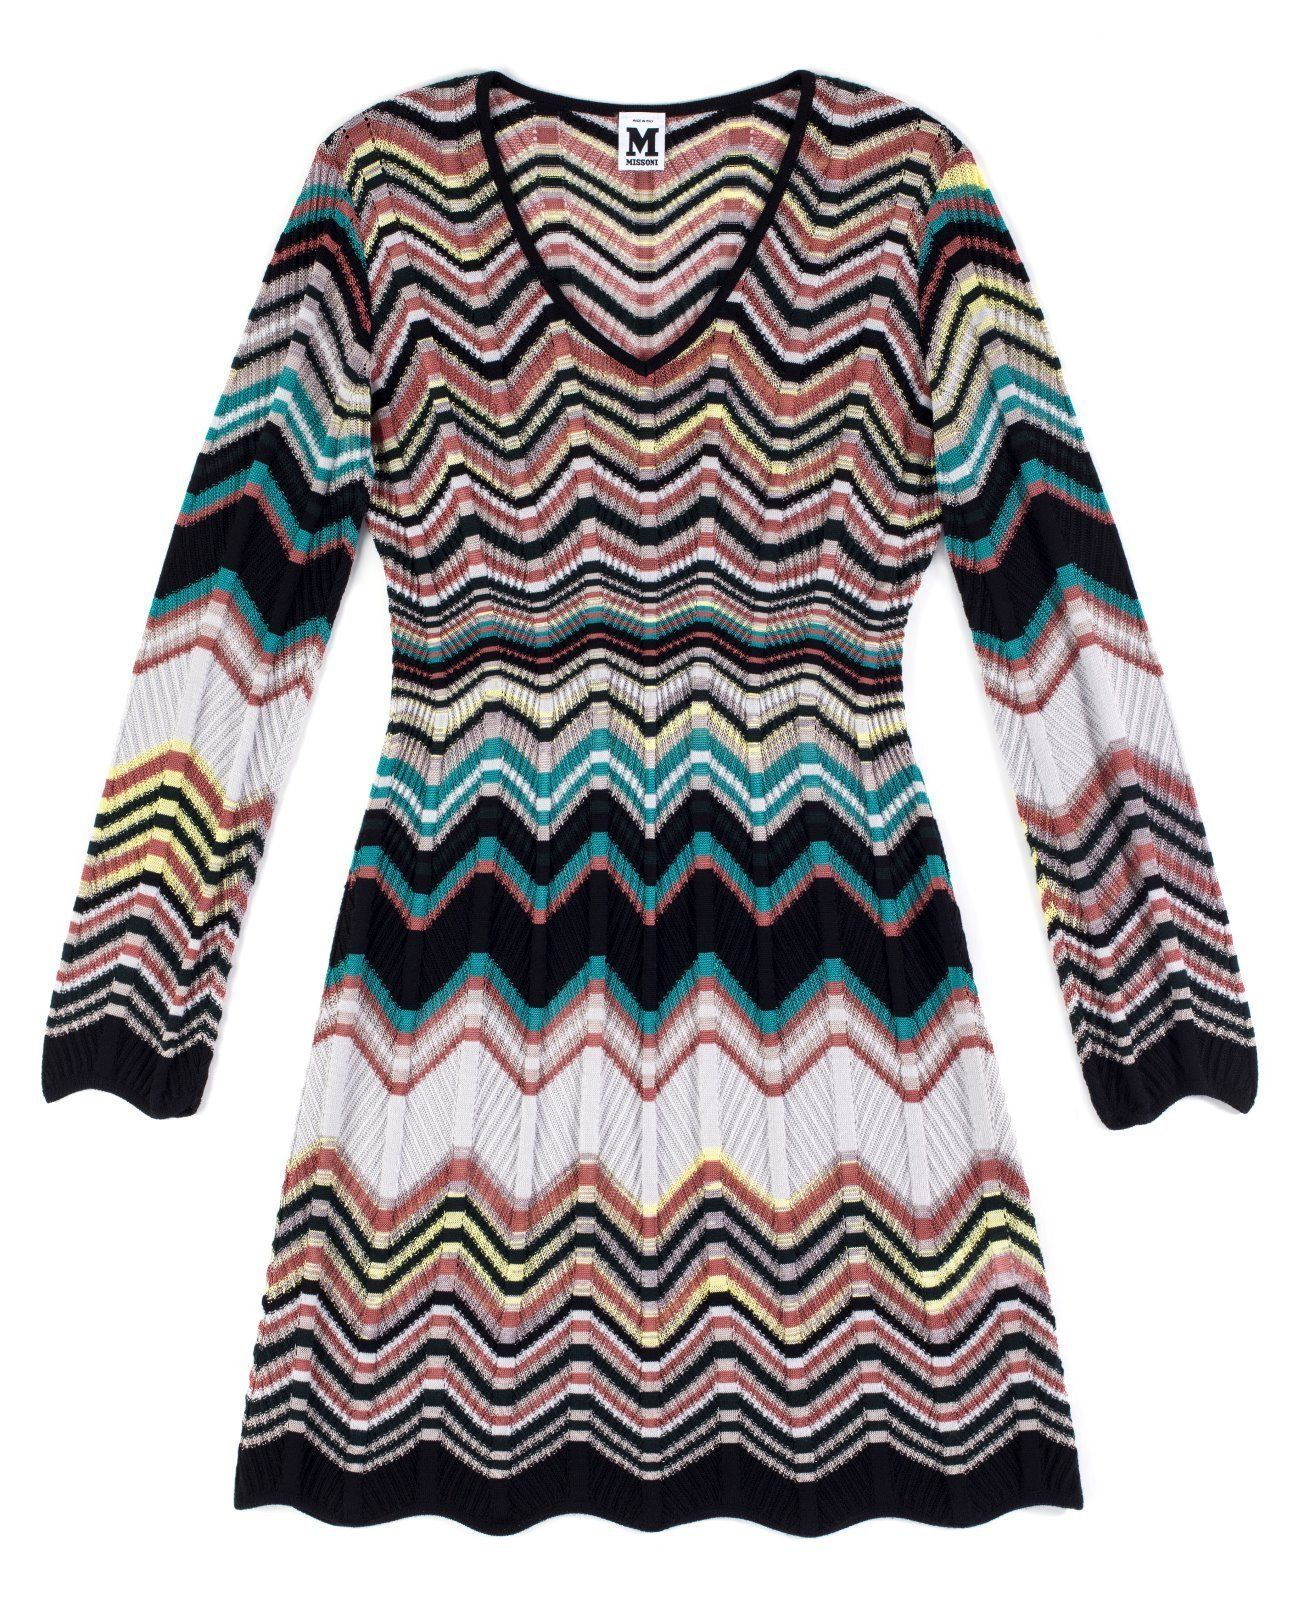 zig-zag knitted dress - Multicolour Missoni SgjcvwN